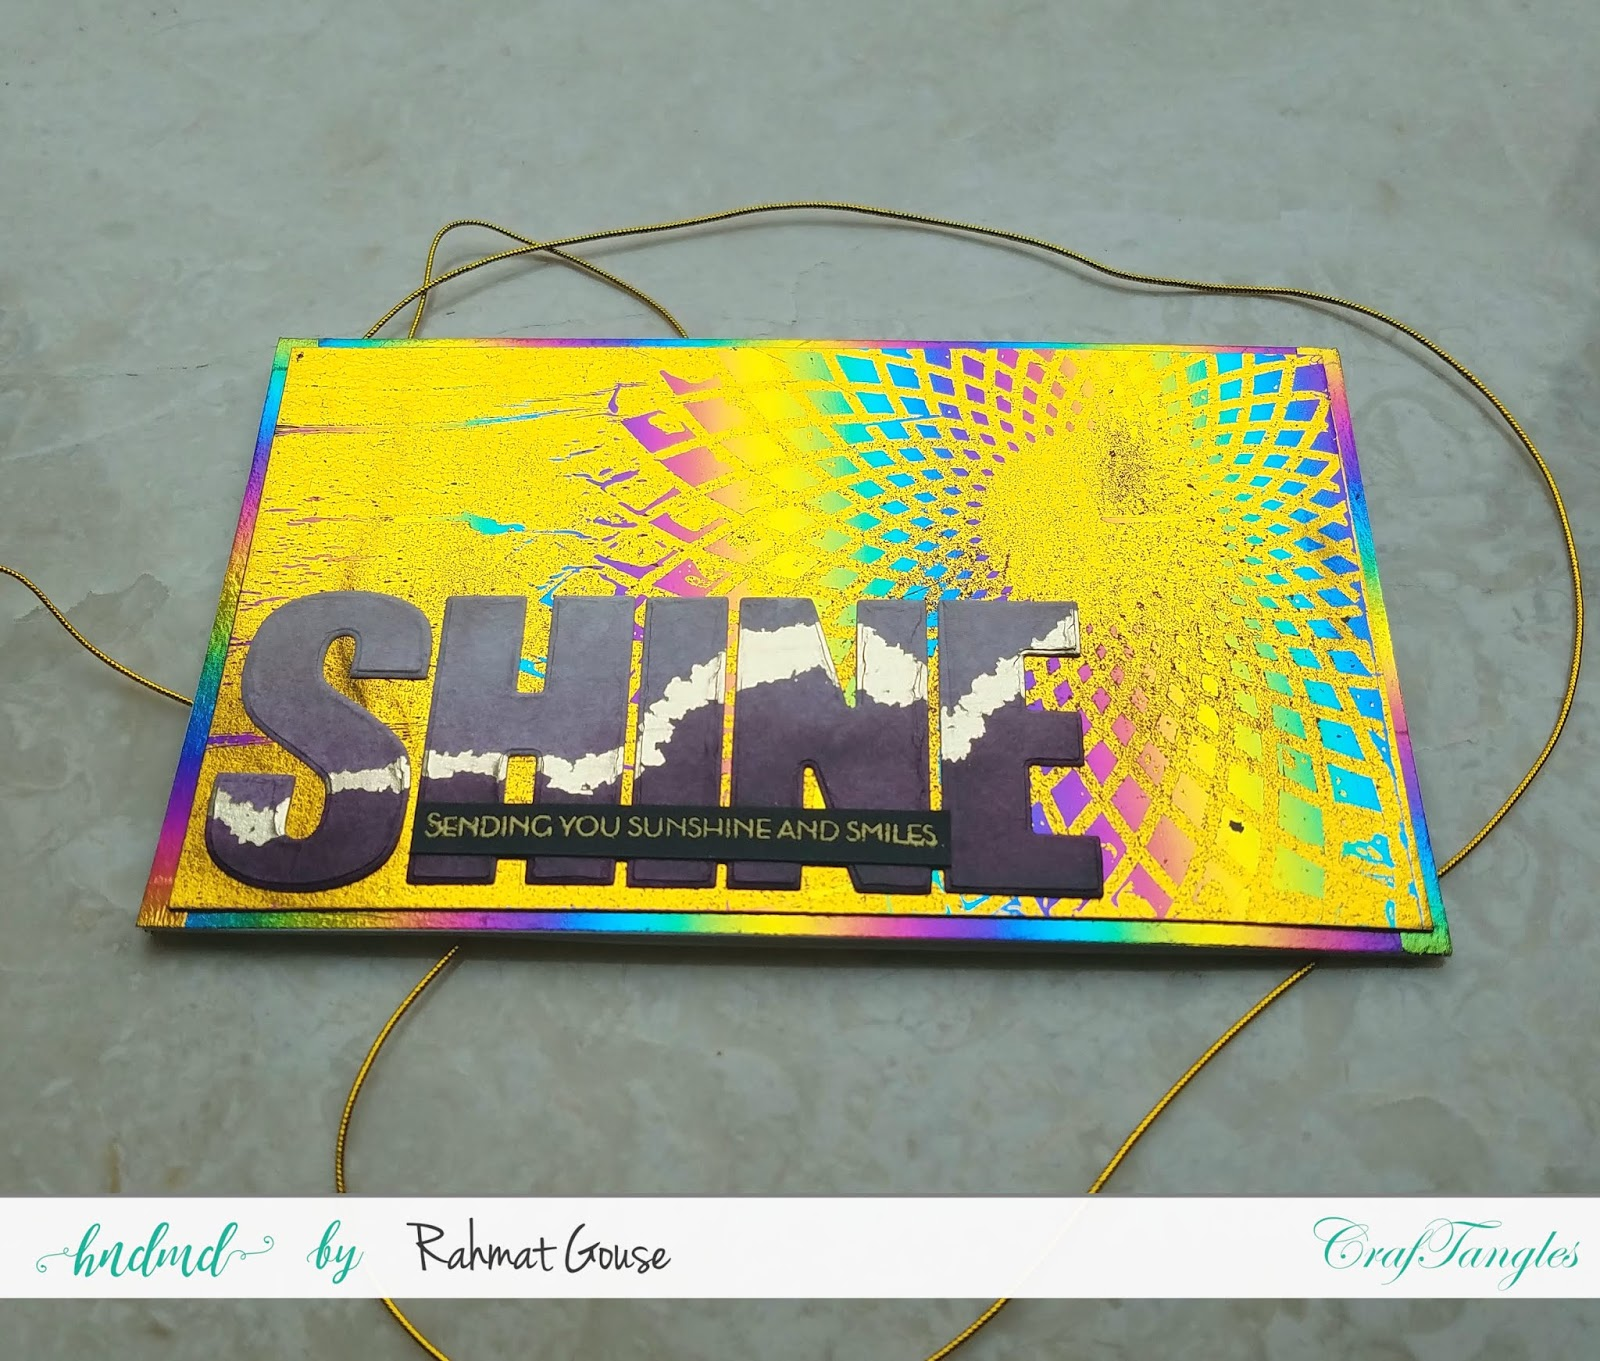 Double foiling using the negatives of stencils and foils - Rahmat 4